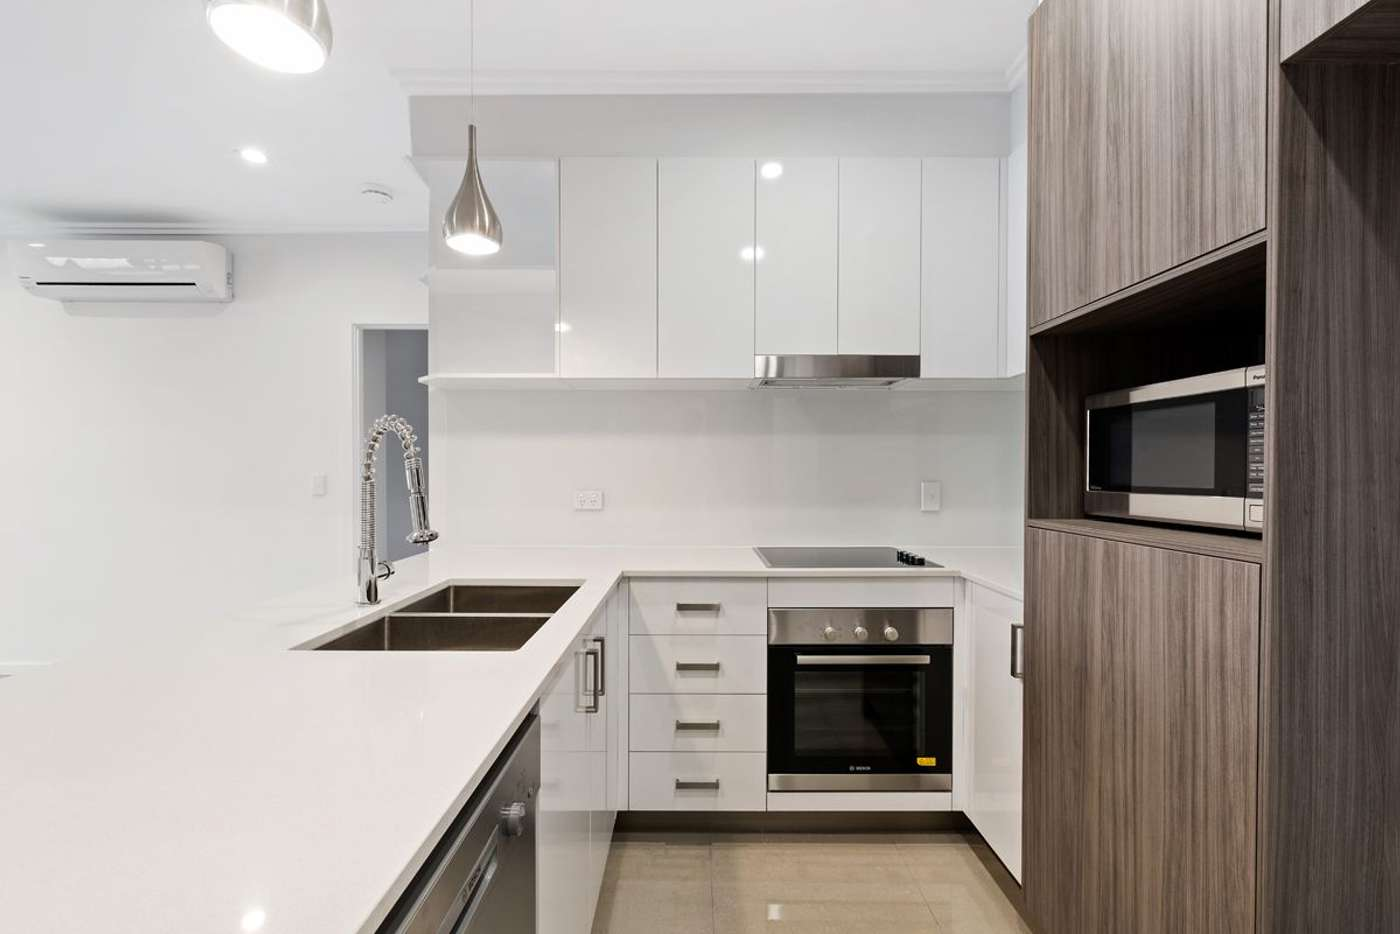 Sixth view of Homely apartment listing, 10/15 Durham, Coorparoo QLD 4151